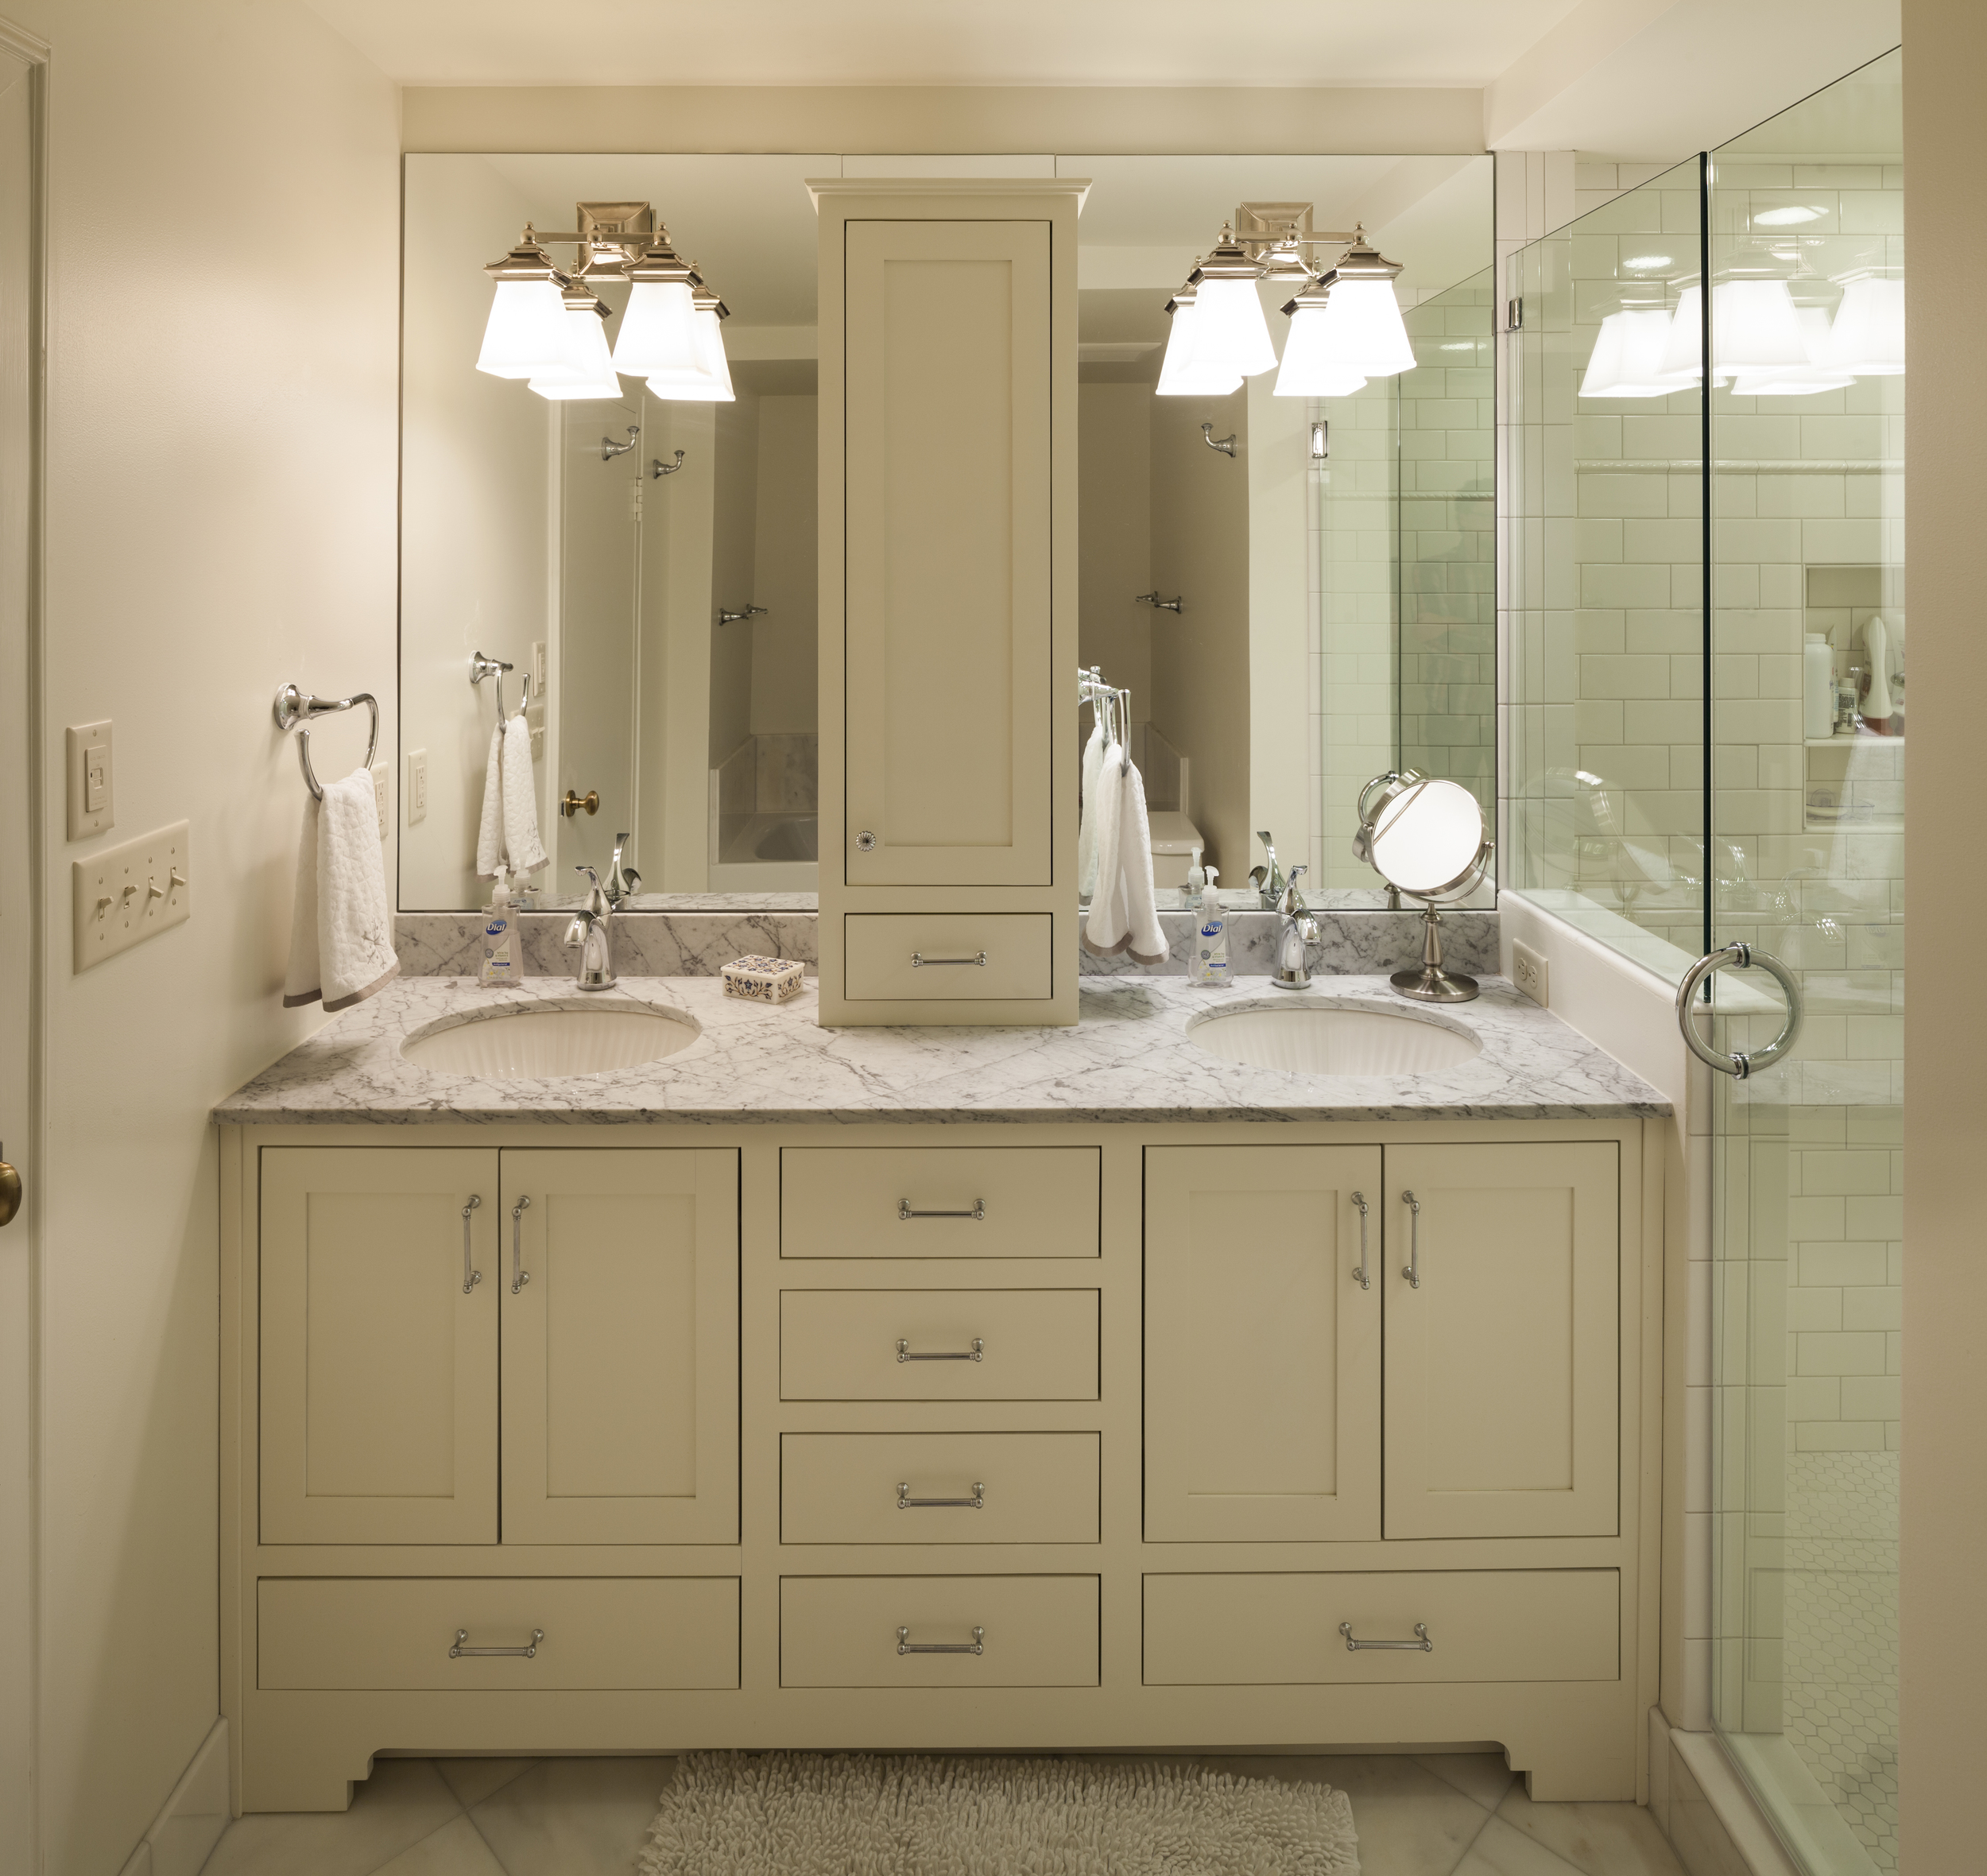 Dual sinks save marriages. Note: DIGS is obsessed with making vanities look like furniture and we almost always include bottom drawers that avoid plumbing impedimentsperfect for storing toilet paper.